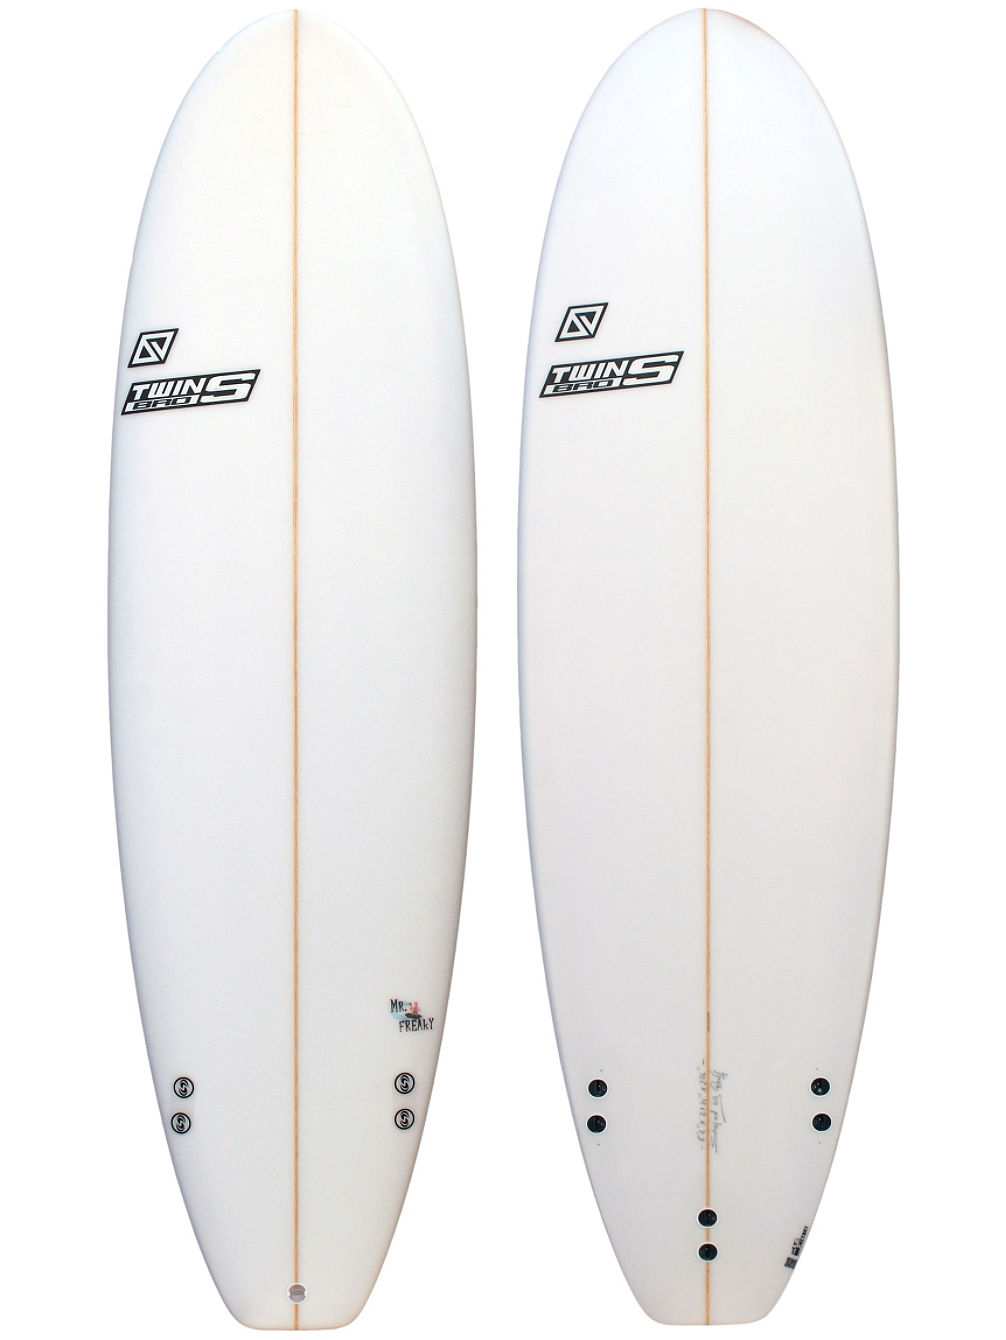 Mr. Freaky FCS 5.8 Surfboard